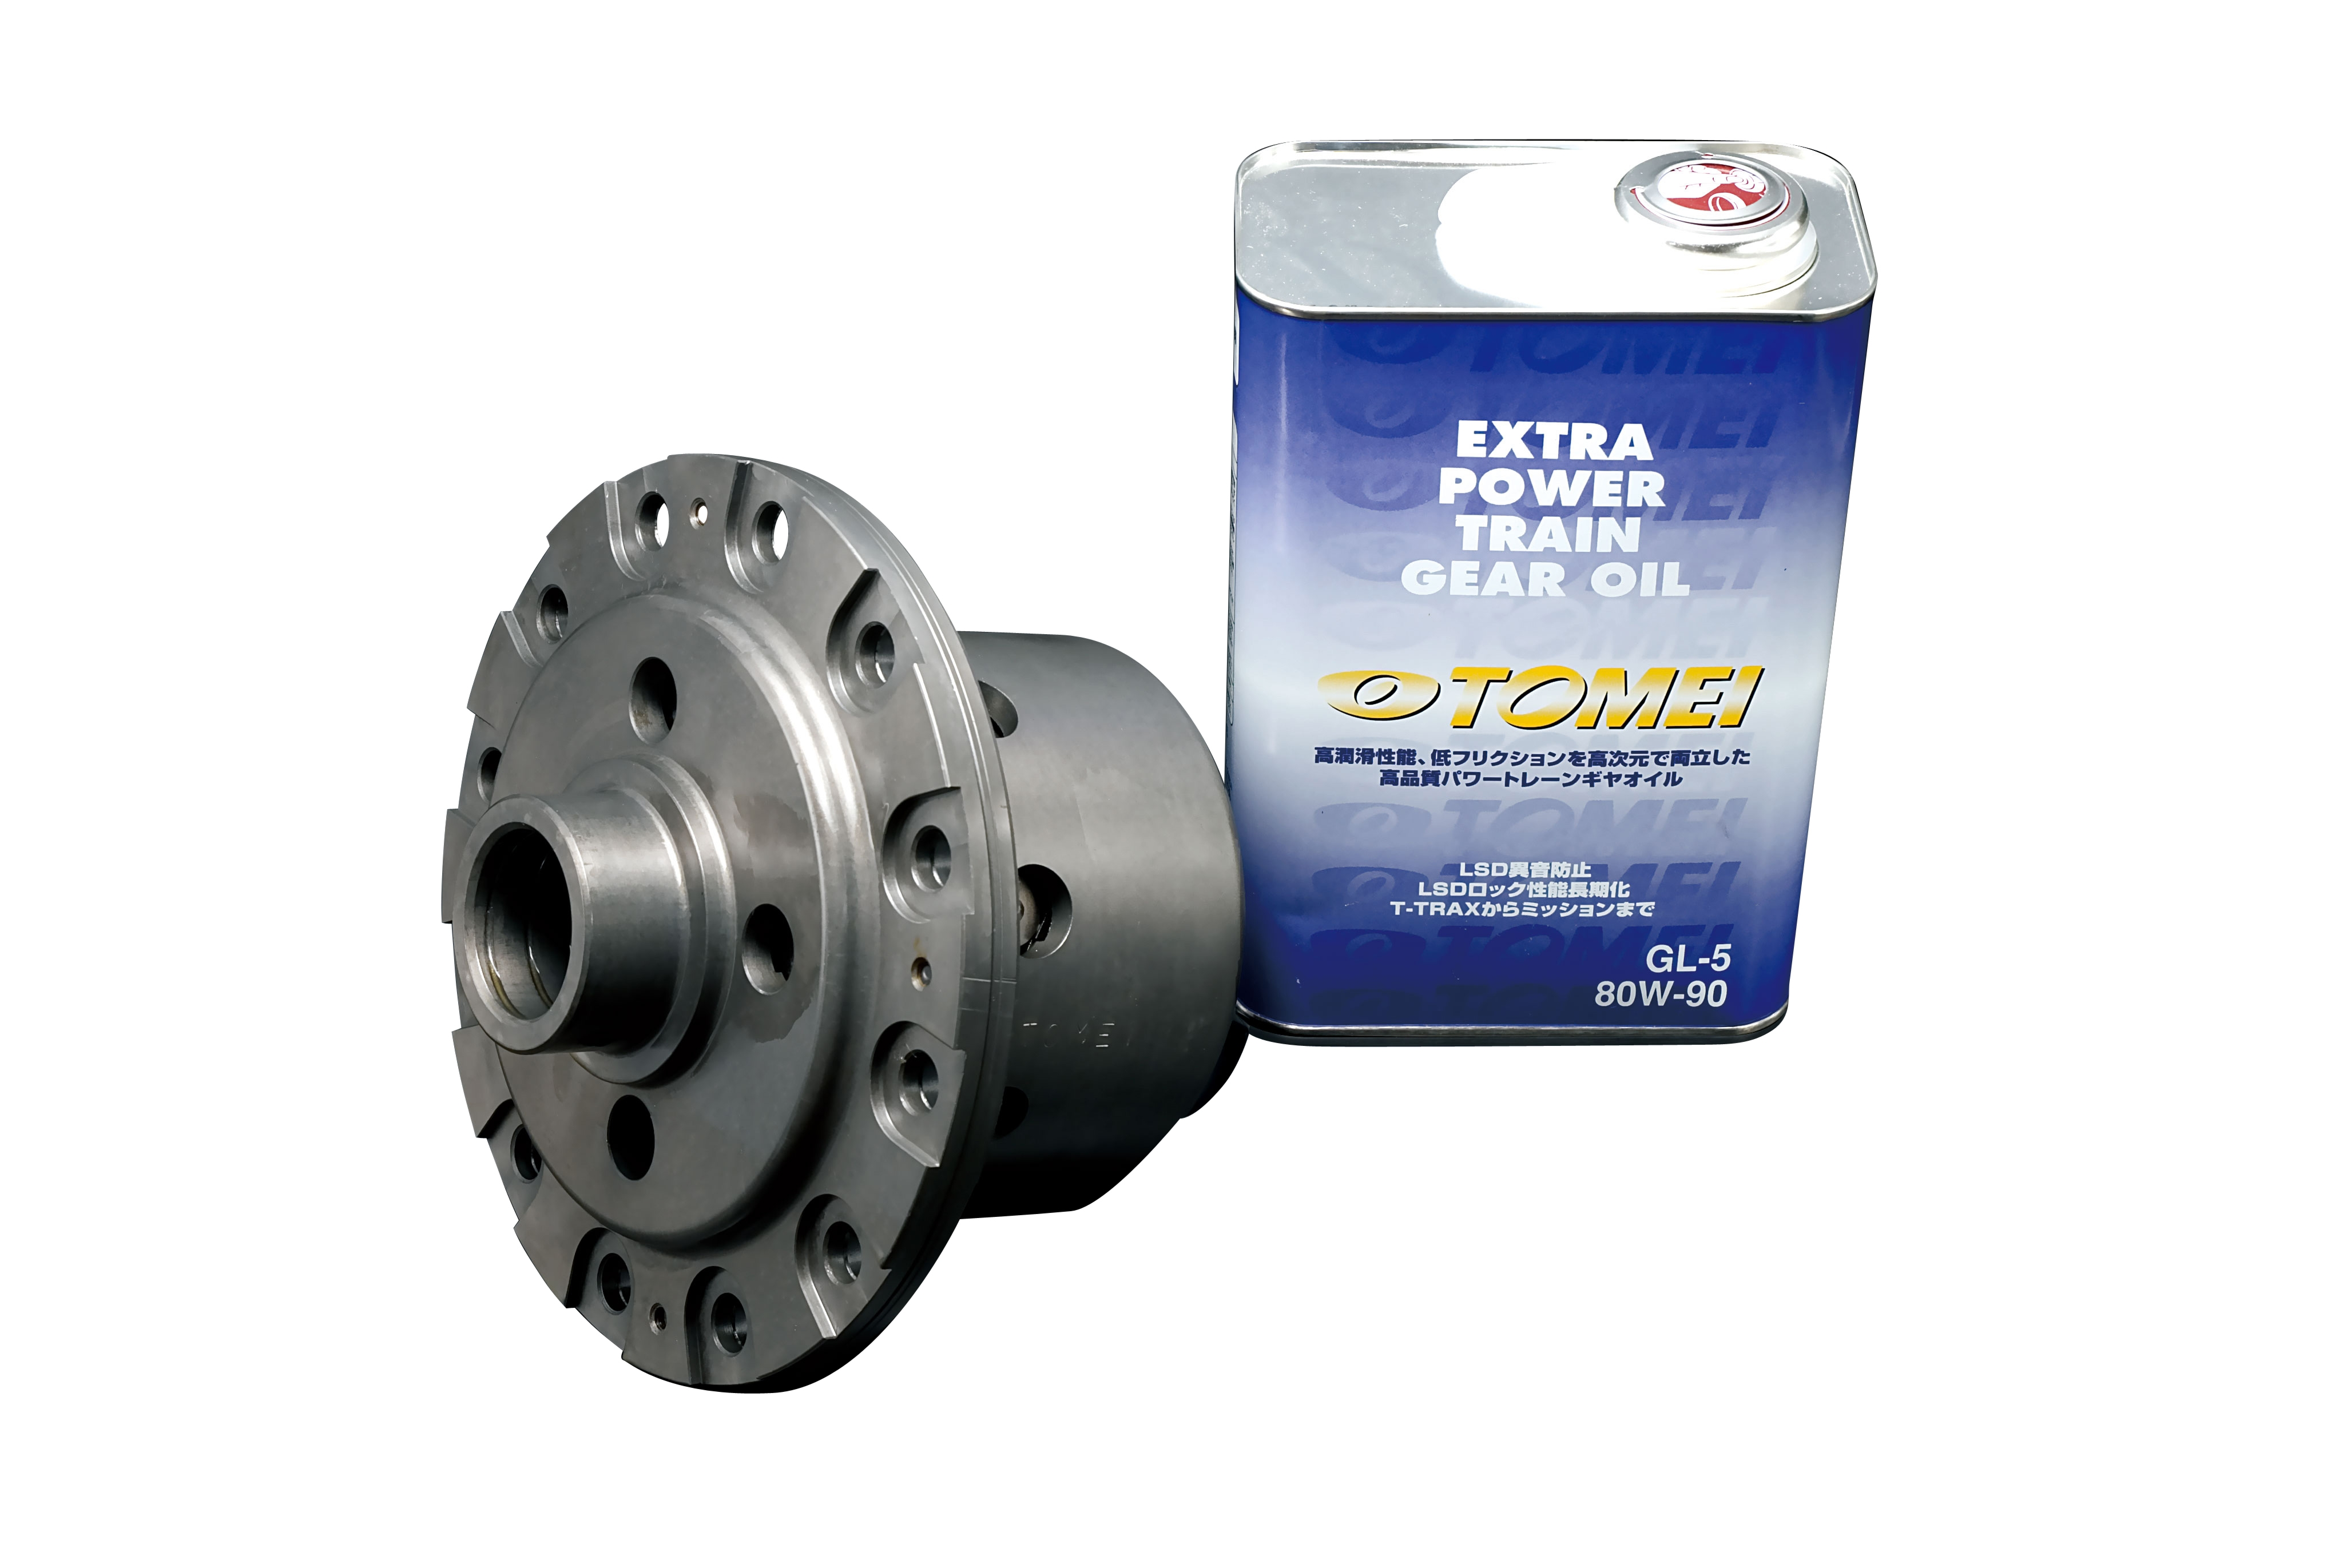 Tomei ZD2 2-Way LSD Kit Technical Trax Advance For Mazda RX-7 FC3S With Standard Viscous Differential